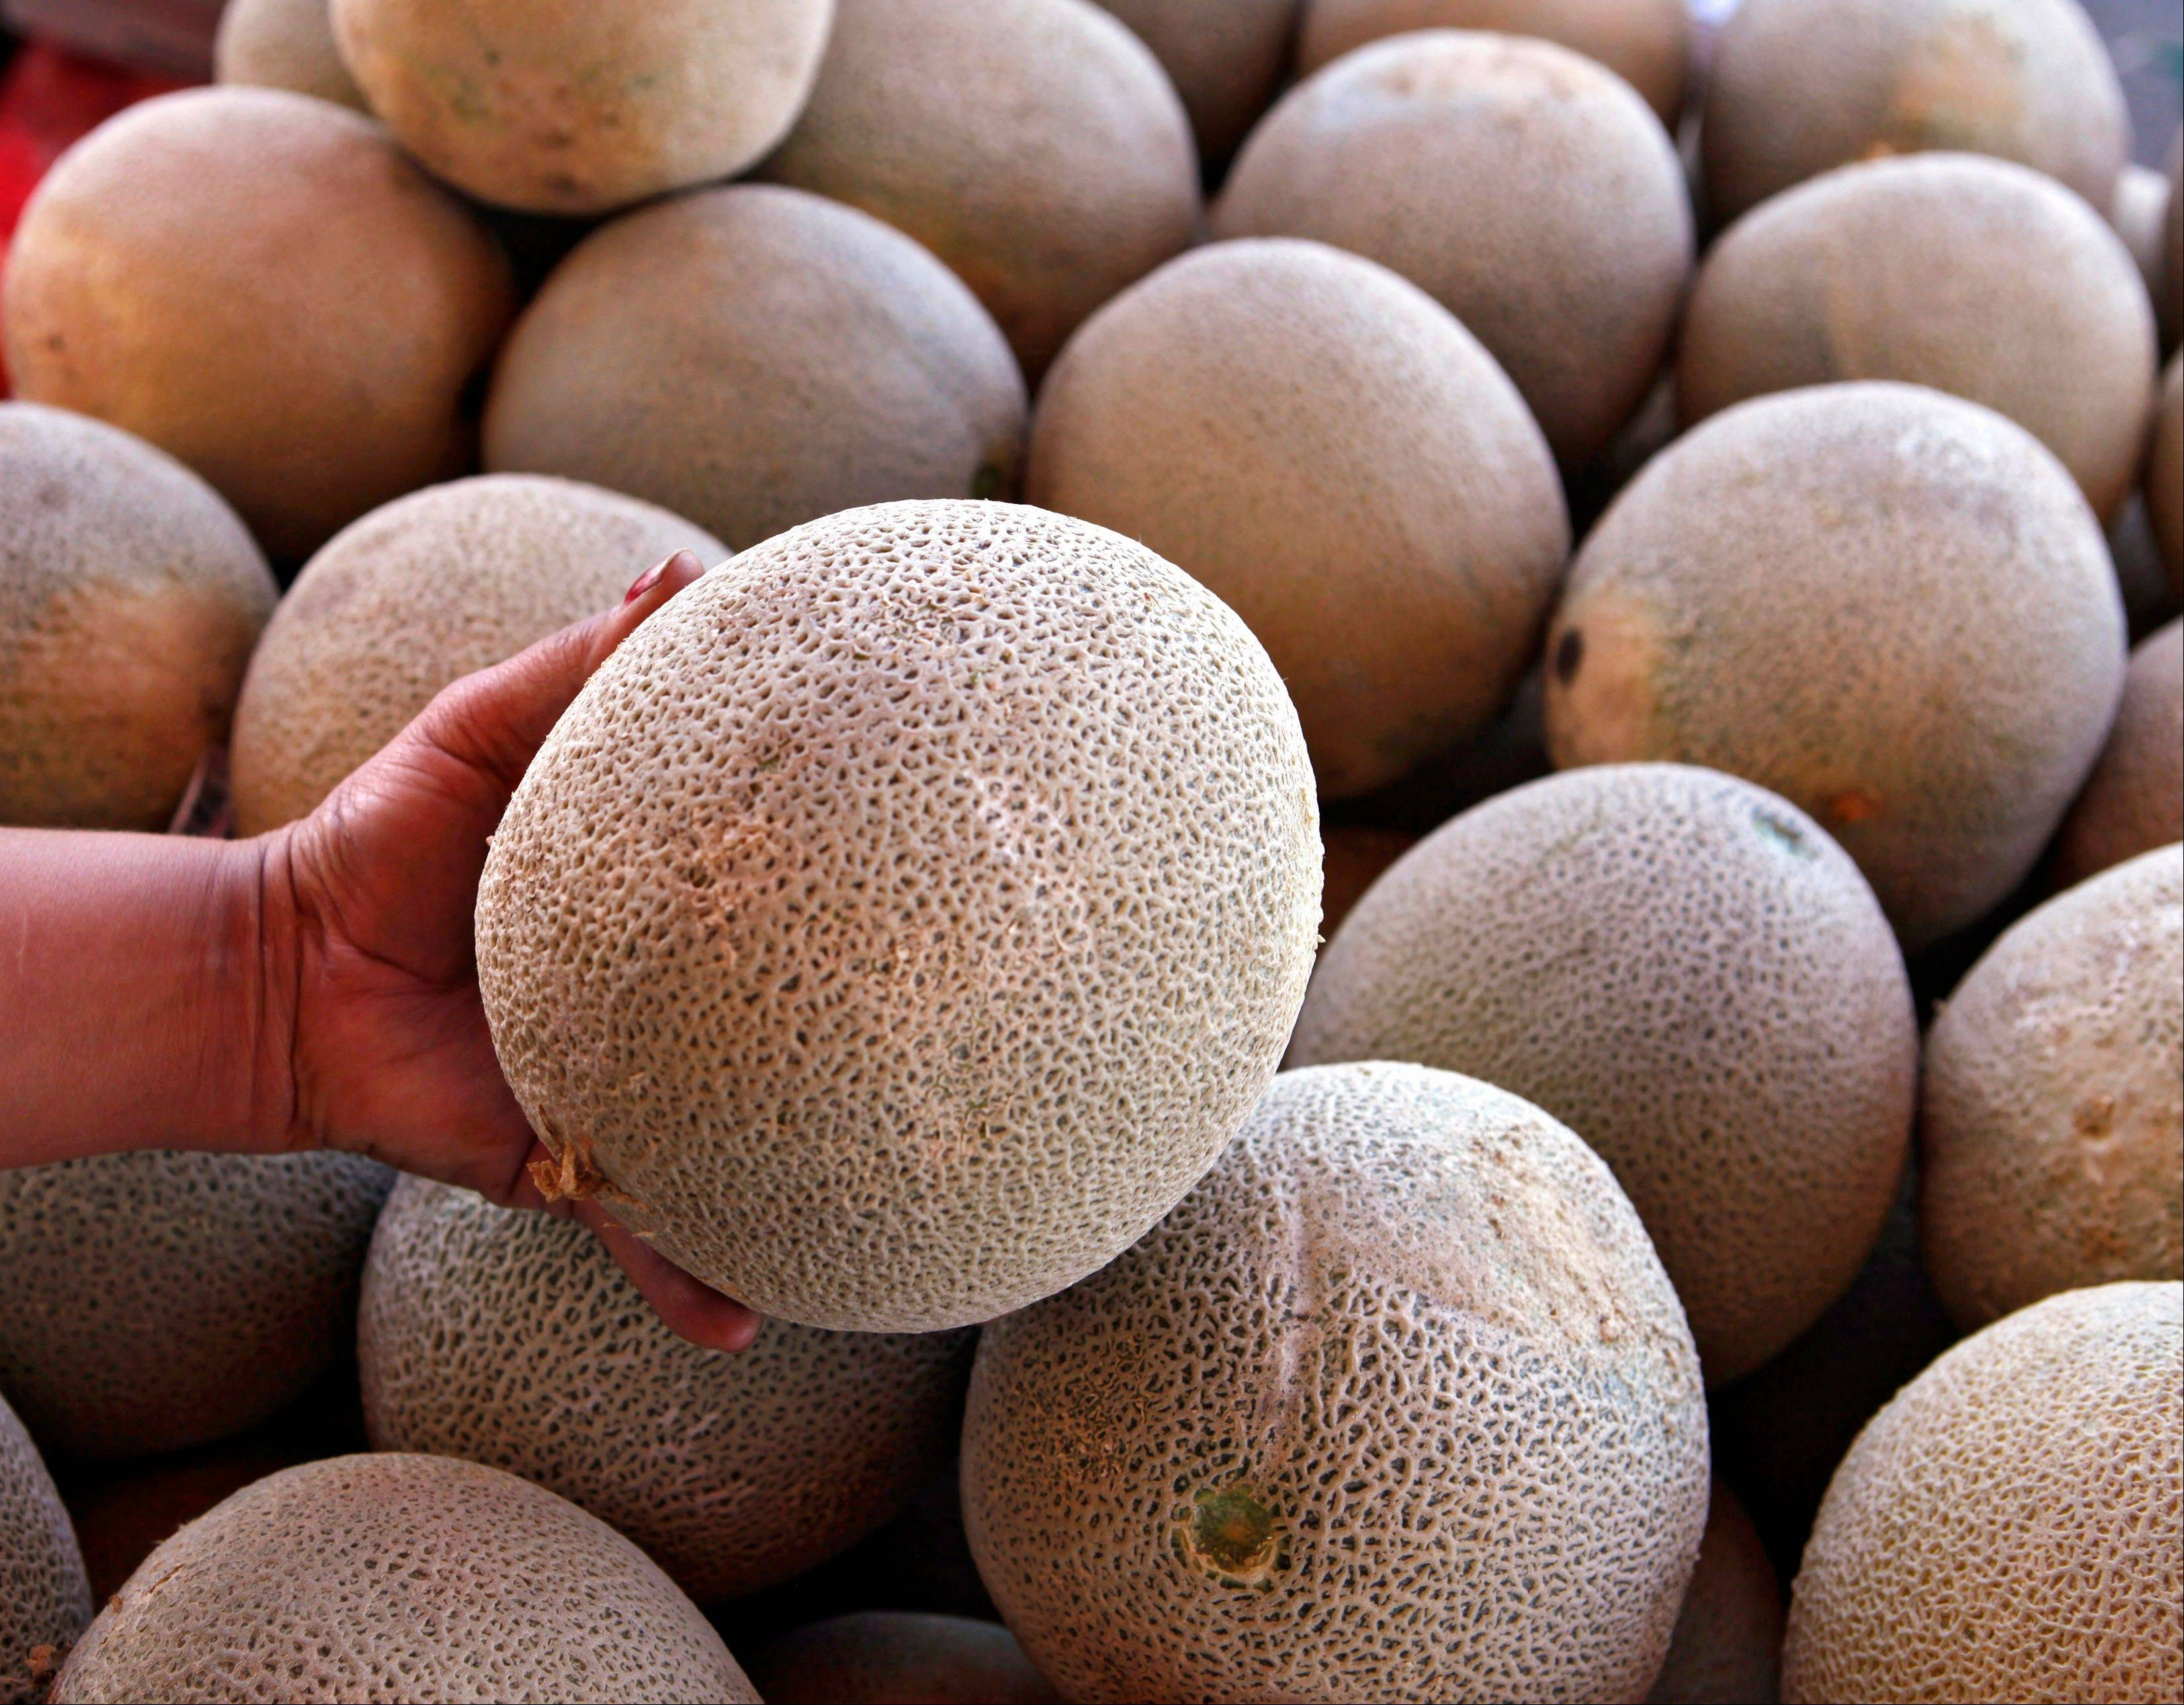 According to federal health officials, a Listeria outbreak in cantaloupe has caused at least 72 illnesses — including up to 16 deaths — in 18 states.